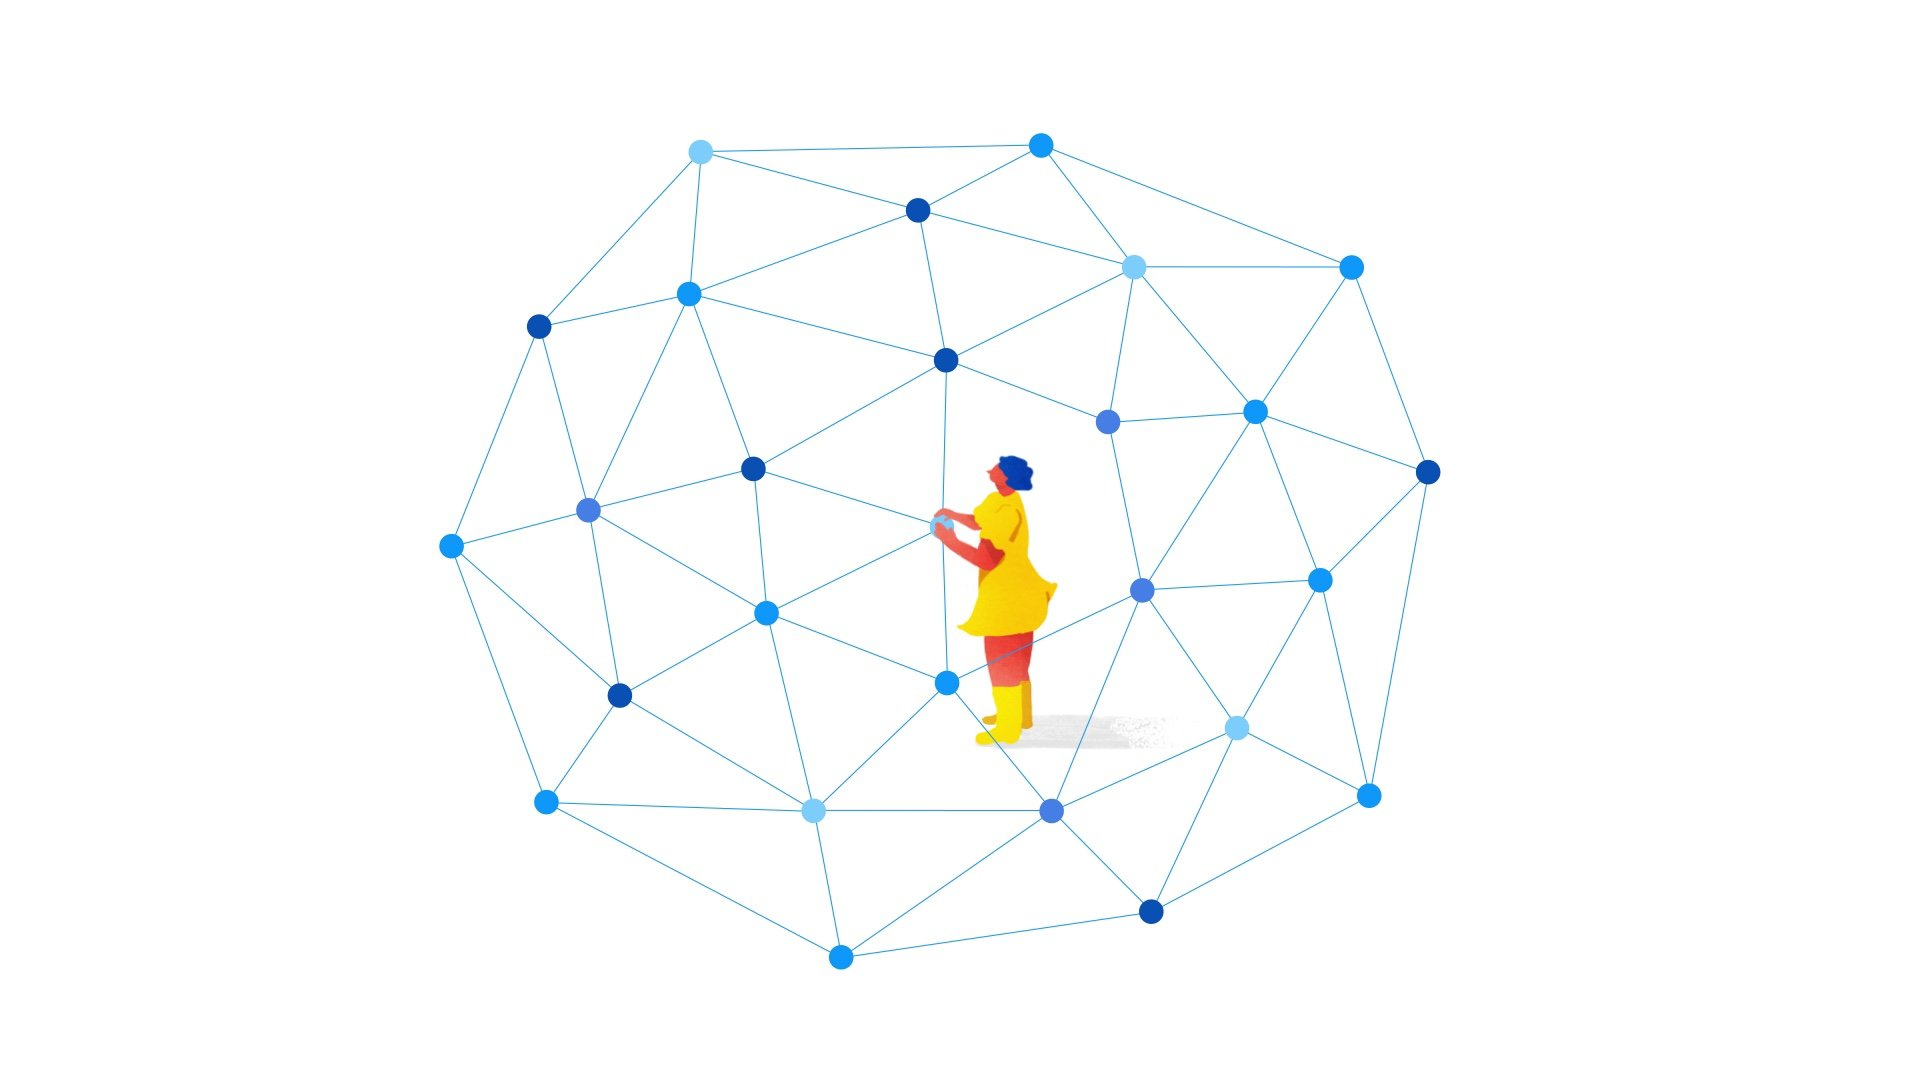 illustration for an animation of Apigee, a Google Cloud Service. It shows a girl in a network